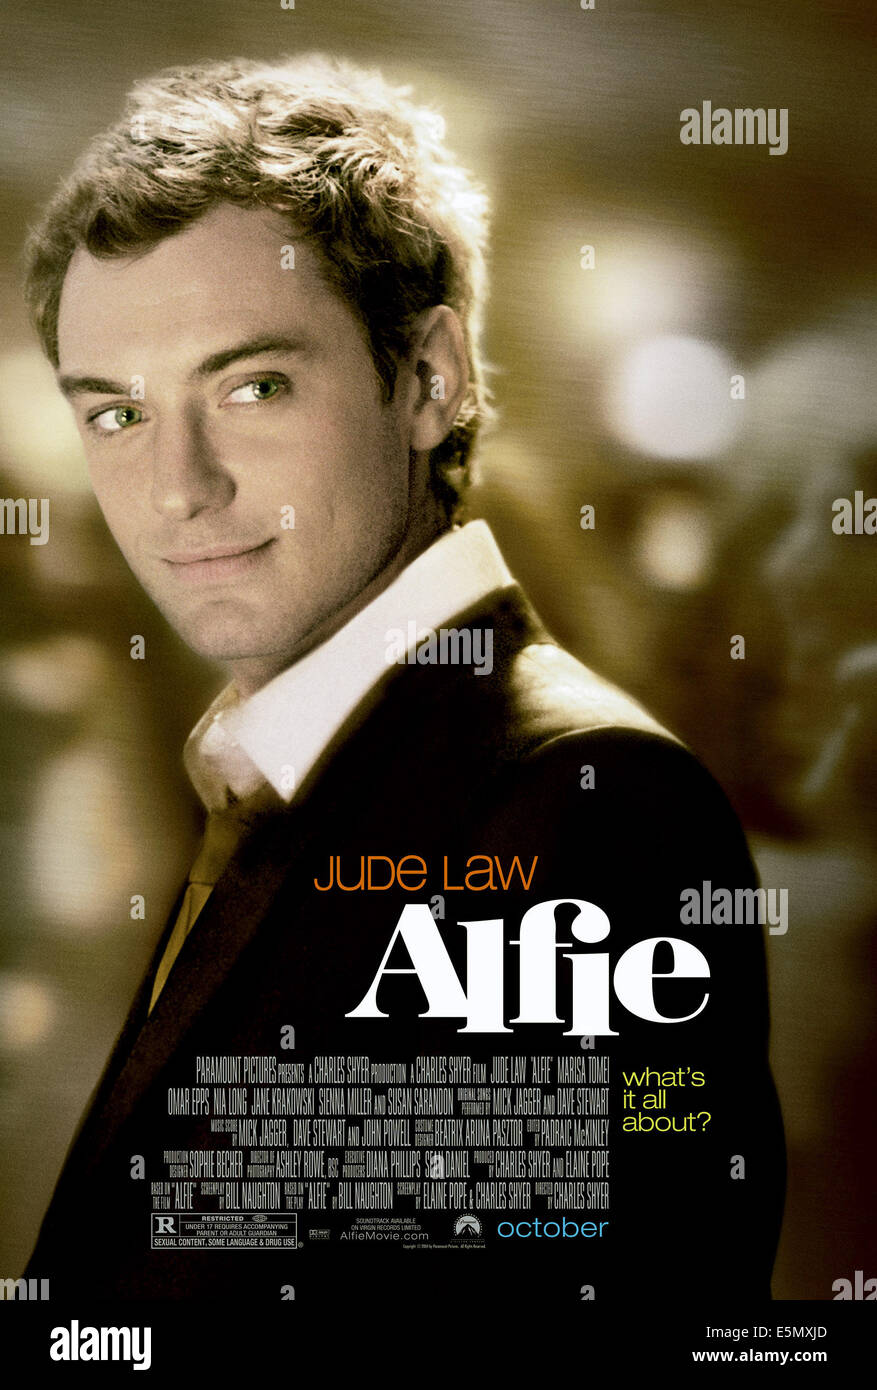 ALFIE, Jude Law, 2004, (c) Paramount/courtesy Everett Collection - Stock Image